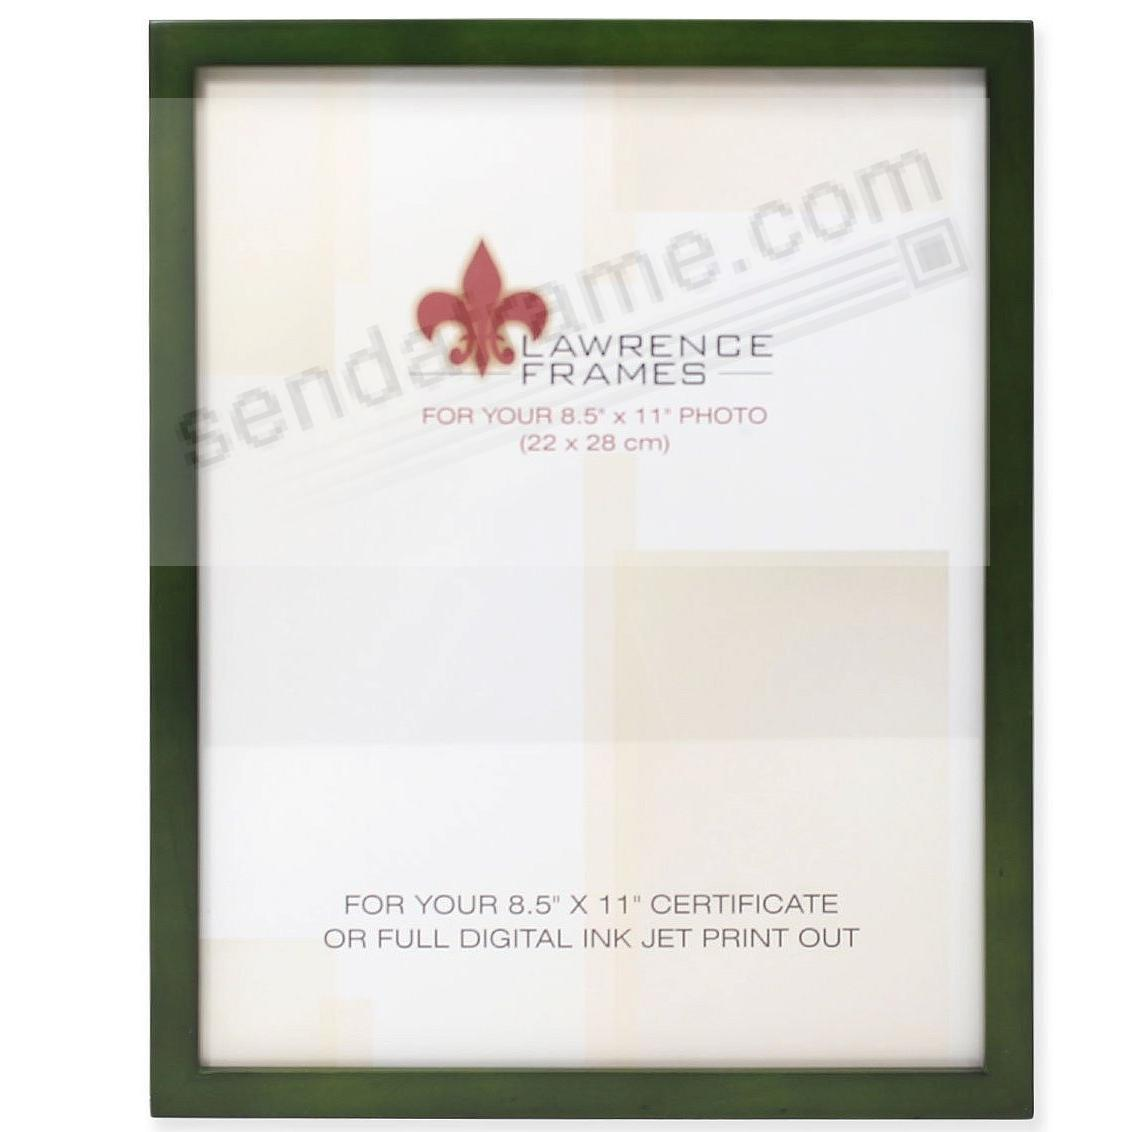 SQUARE CORNER Green Stain classic 8½x11 frame by Lawrence Frames®